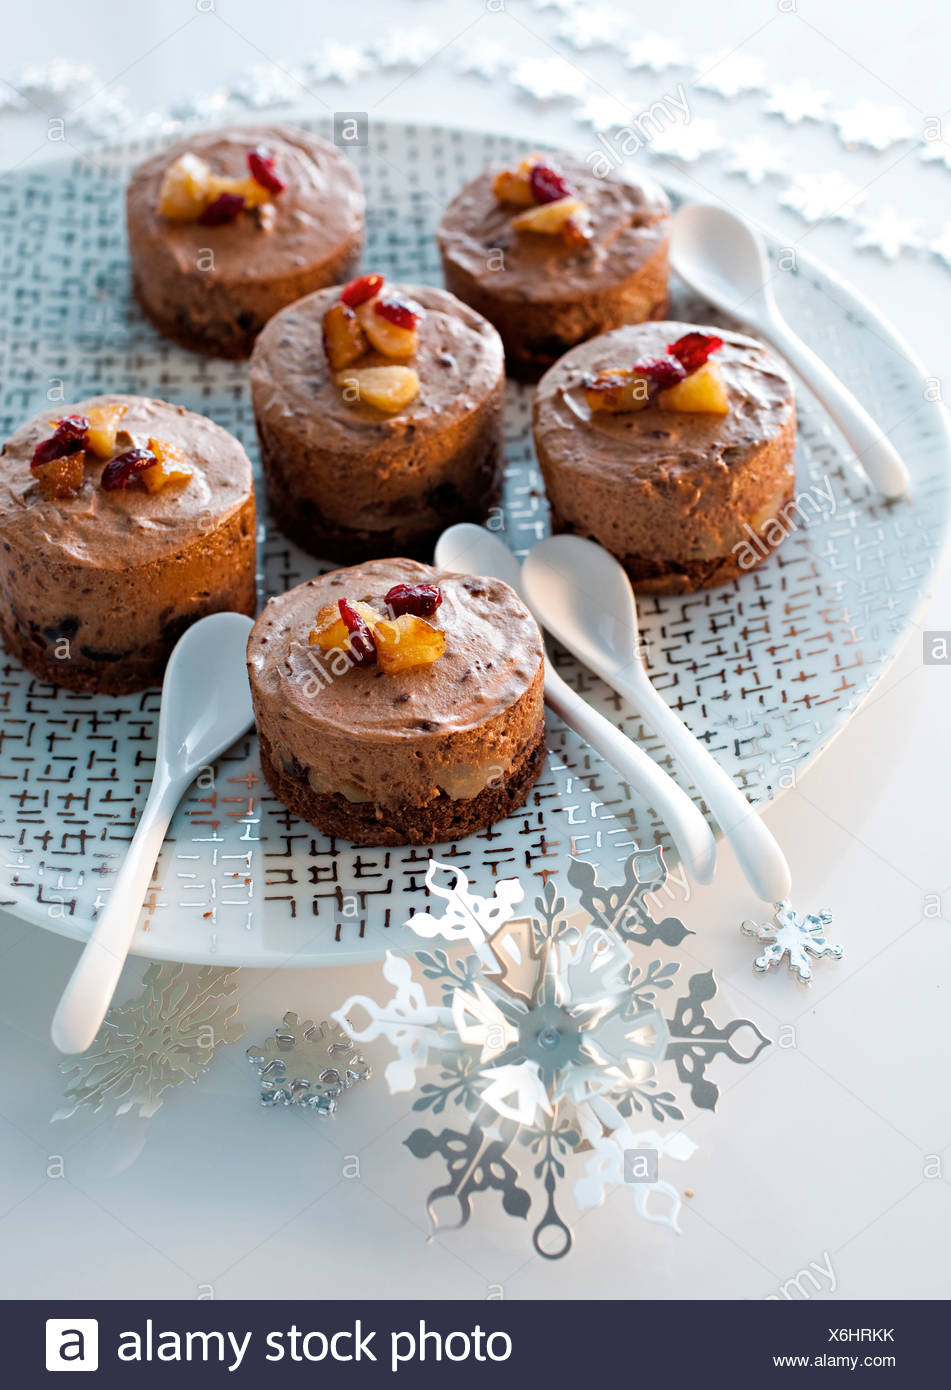 Christmas Gourmet Dream with Pears, Caramel and chocolat - Stock Image